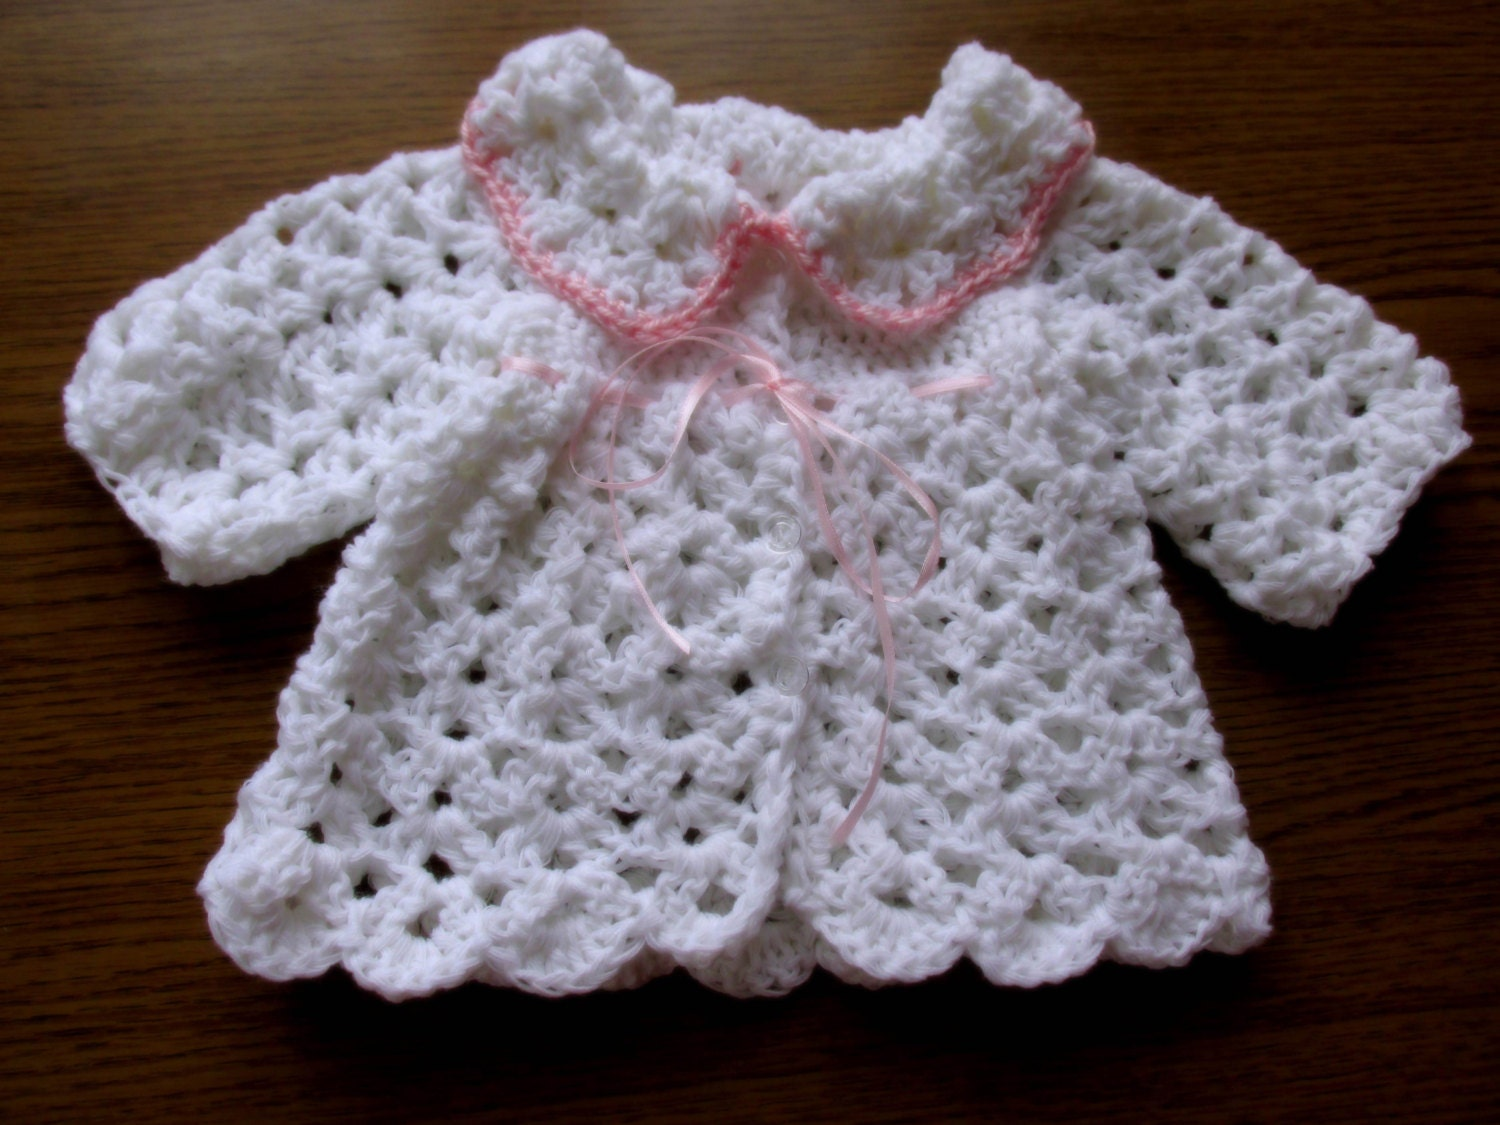 Crochet baby cardigan pattern in 5 sizes instant download baby crochet baby cardigan pattern in 5 sizes instant download baby sweater baby jacket baby girl cardigan baby girl pattern bankloansurffo Images